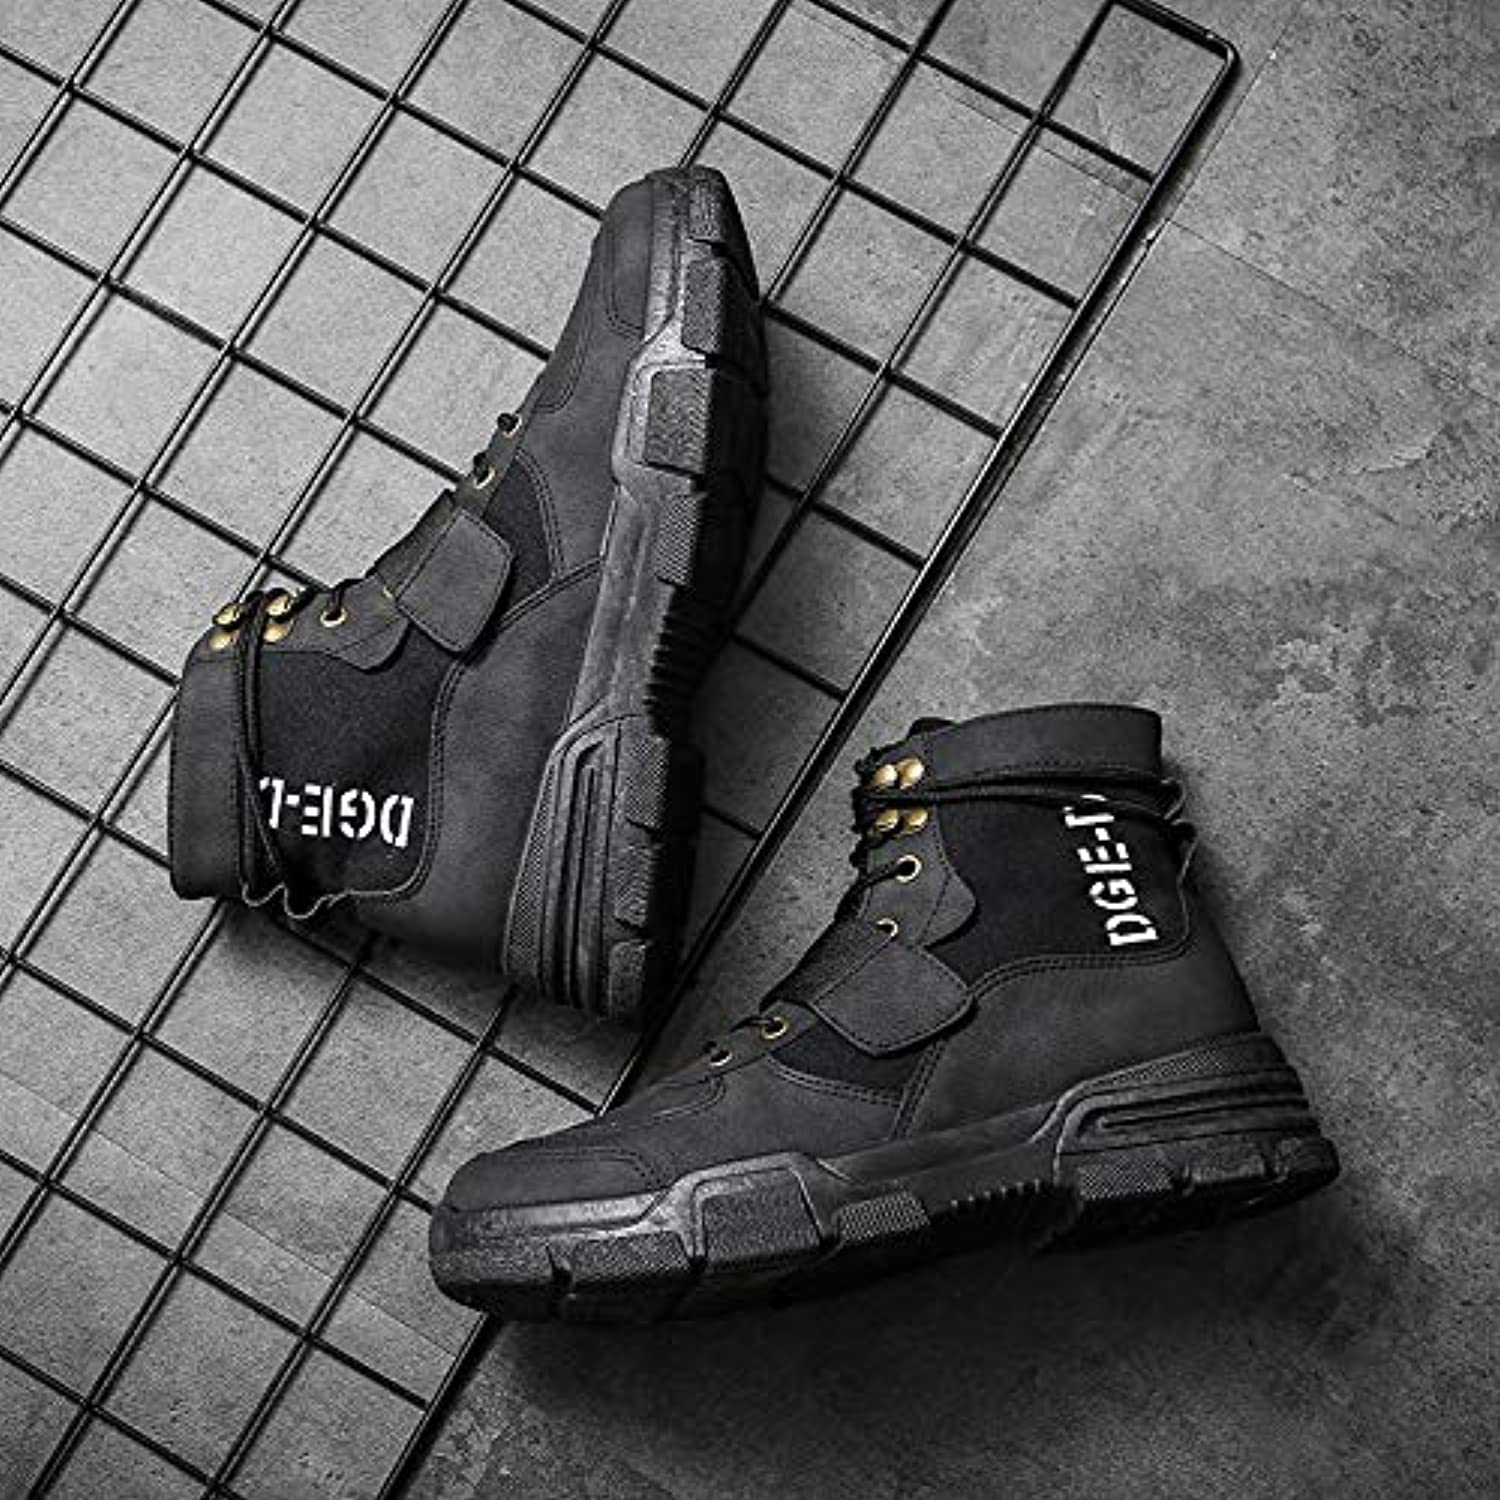 LOVDRAM Boots Men's Autumn And Winter In The Tube Martin Boots Platform shoes Men'S High-Top Casual shoes Men'S Boots